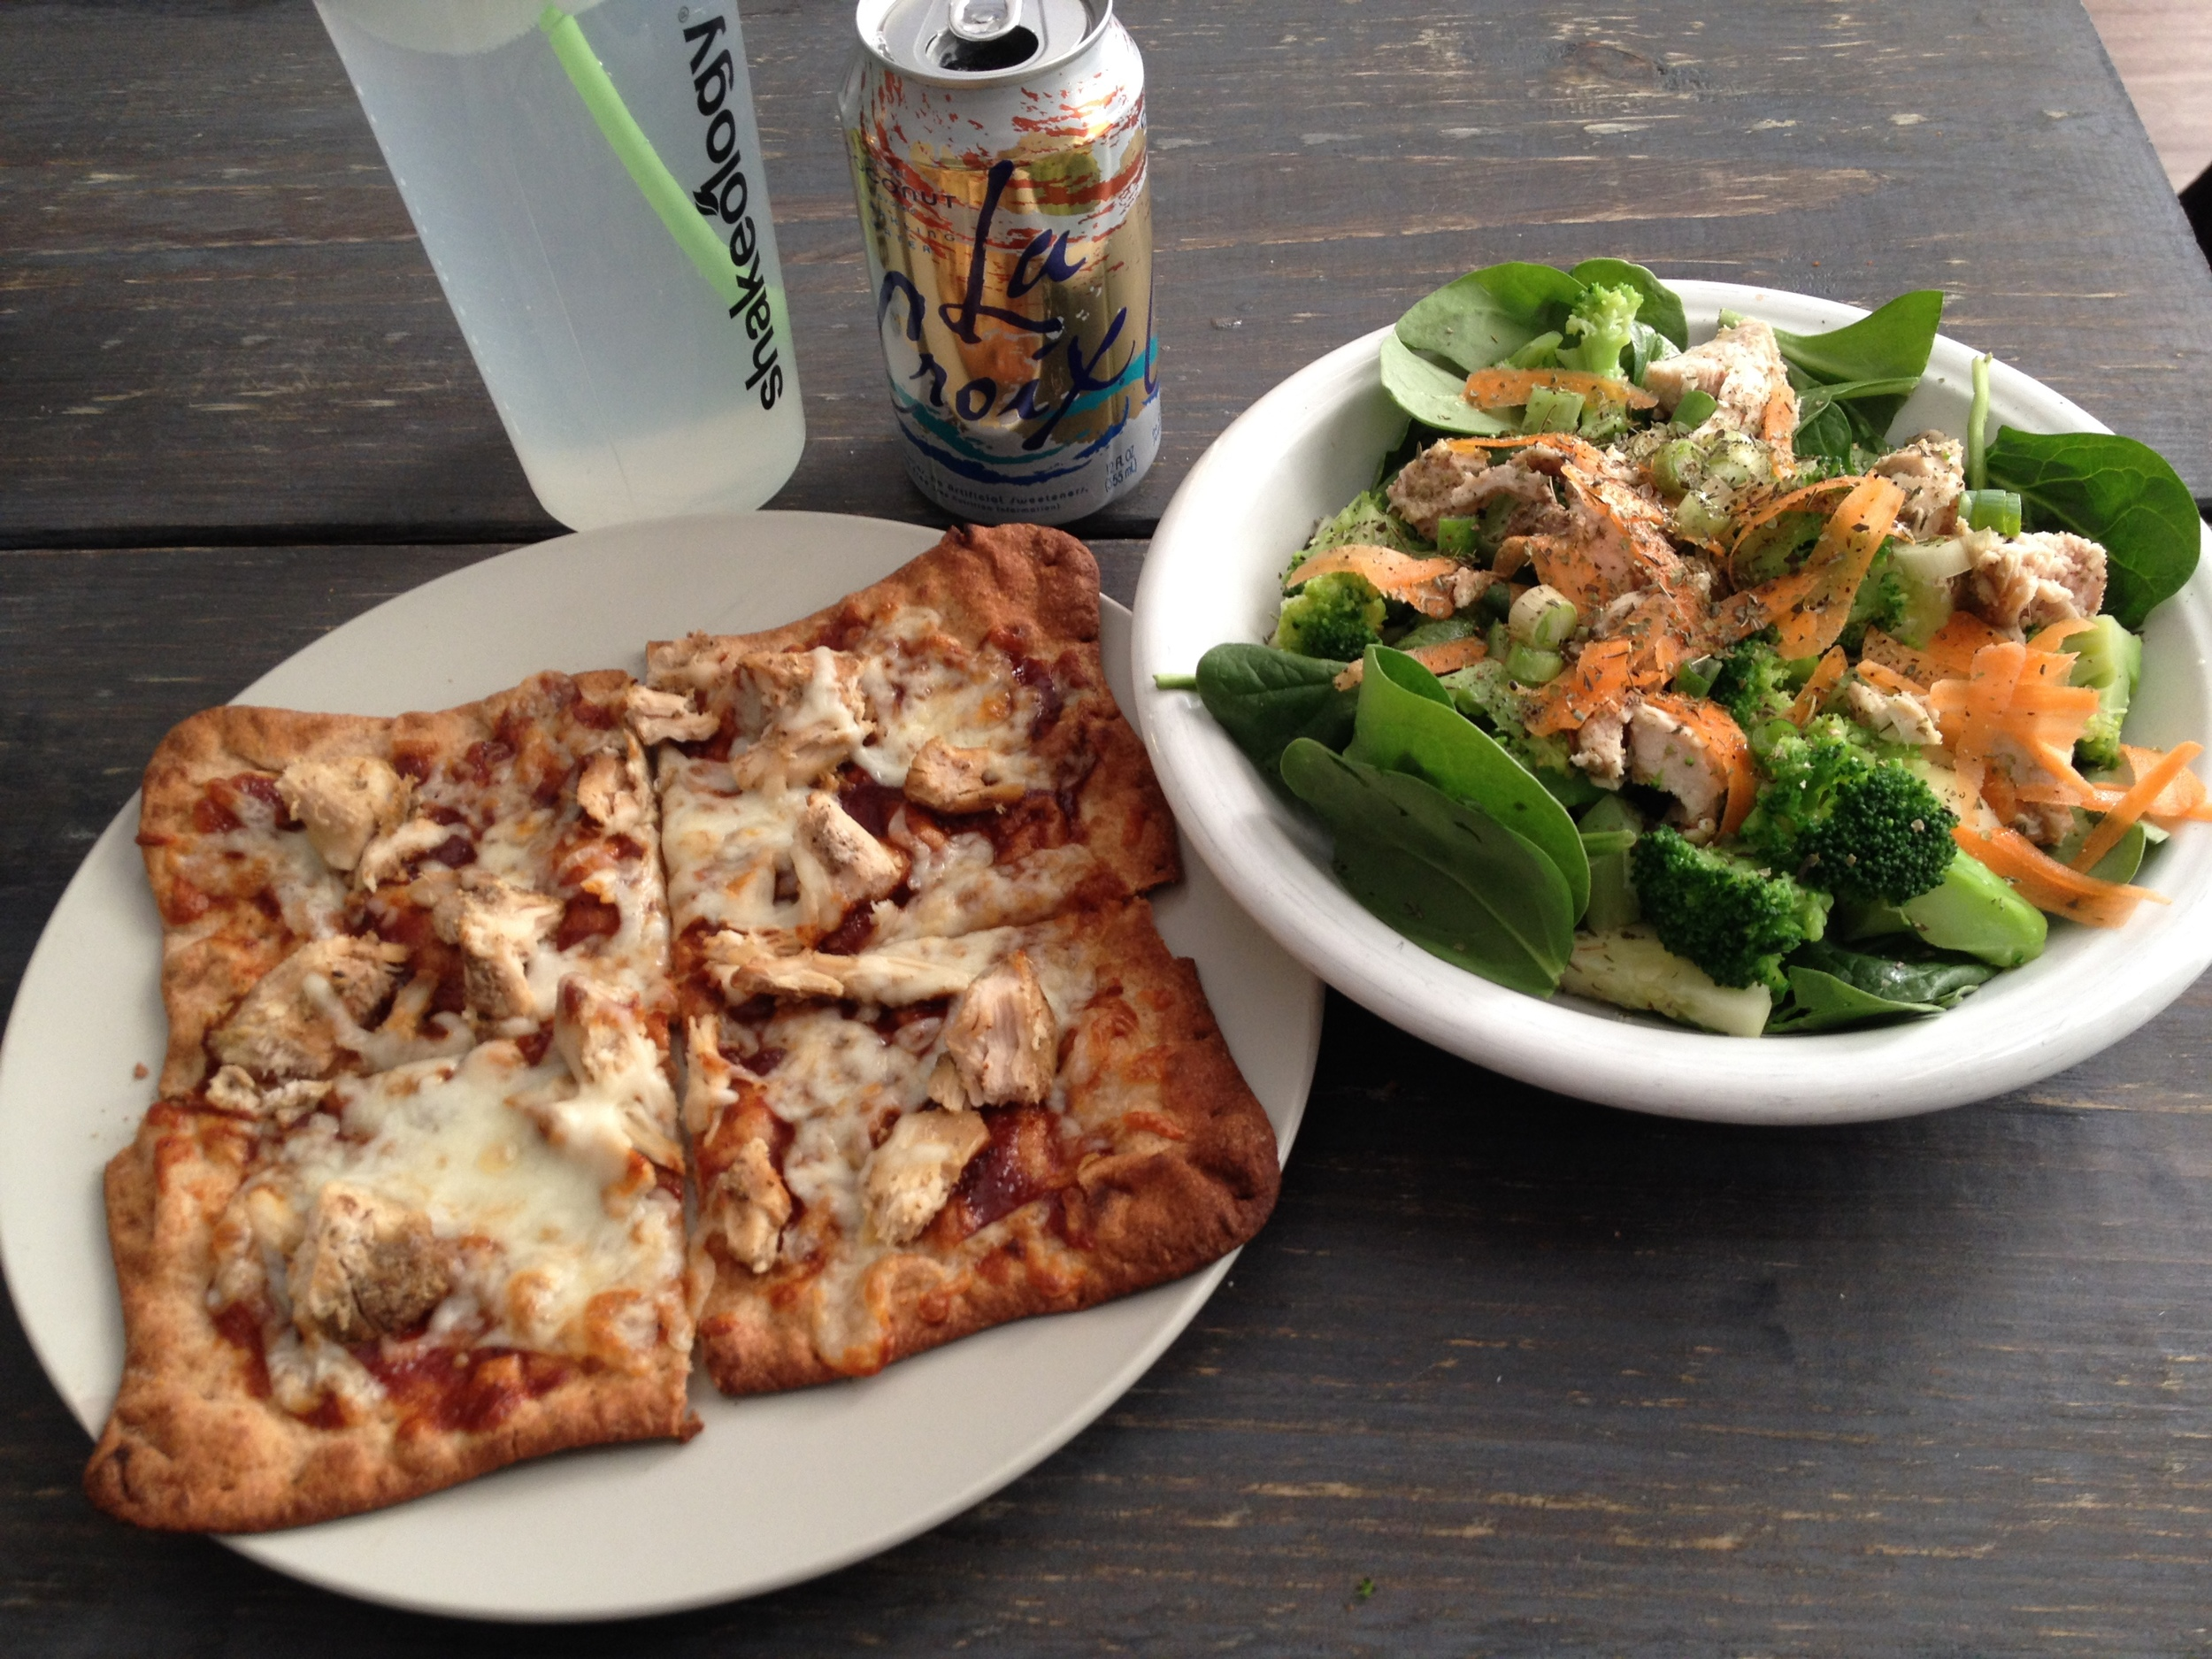 Pizza is one of the main food groups, right? Pizza, water in a Shakeology bottle, La Croix, and vegetable medley salad. Yum.